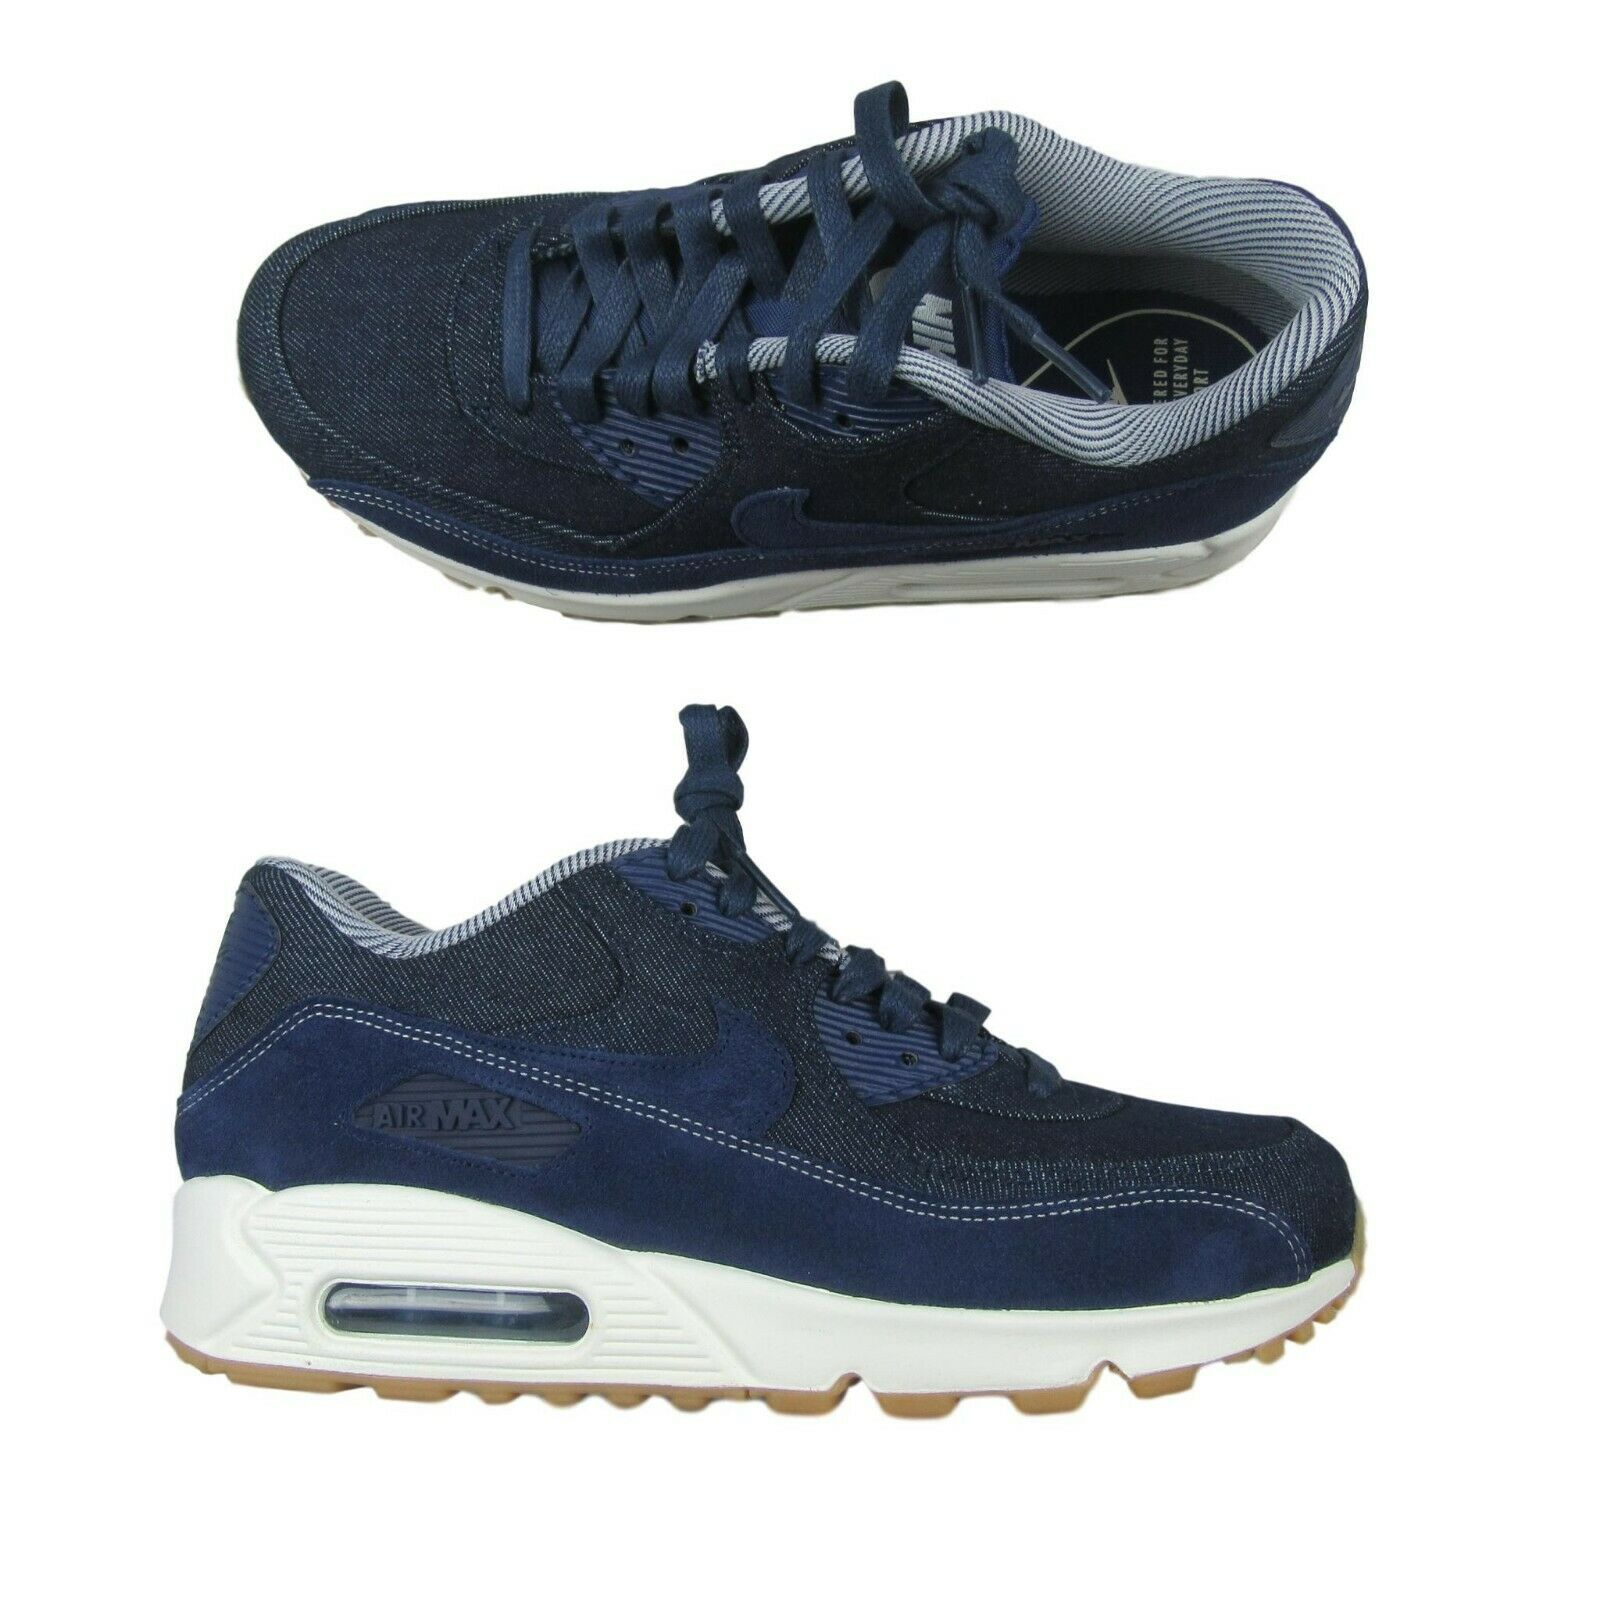 Nike Air Max 90 SE Blue Denim Pack Running Shoes Size 8.5 Womens 881105 401 New